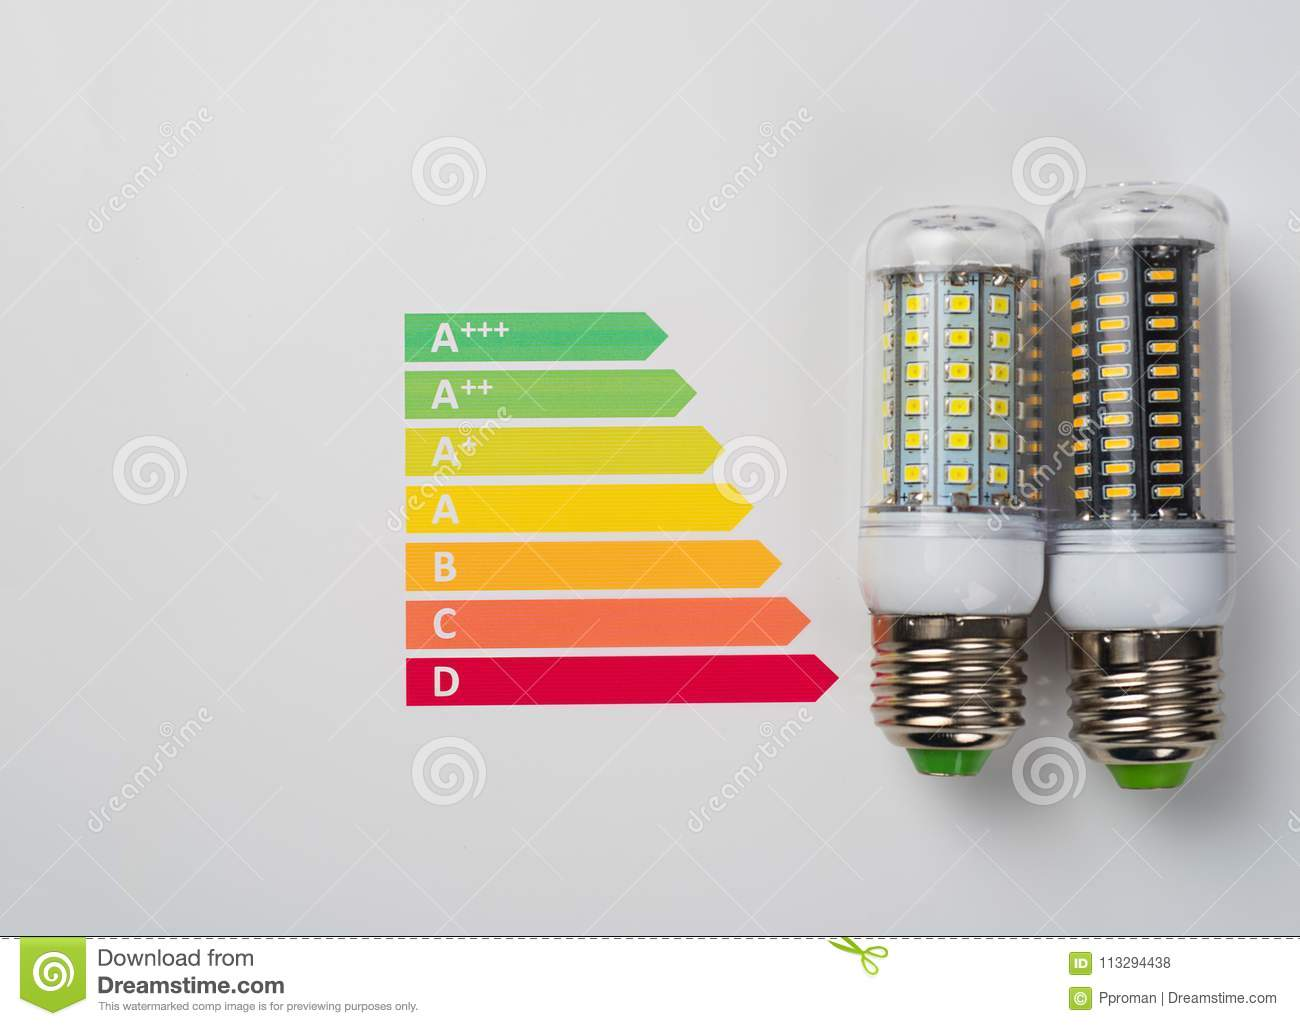 hight resolution of energy efficiency concept with energy rating chart and led lamp